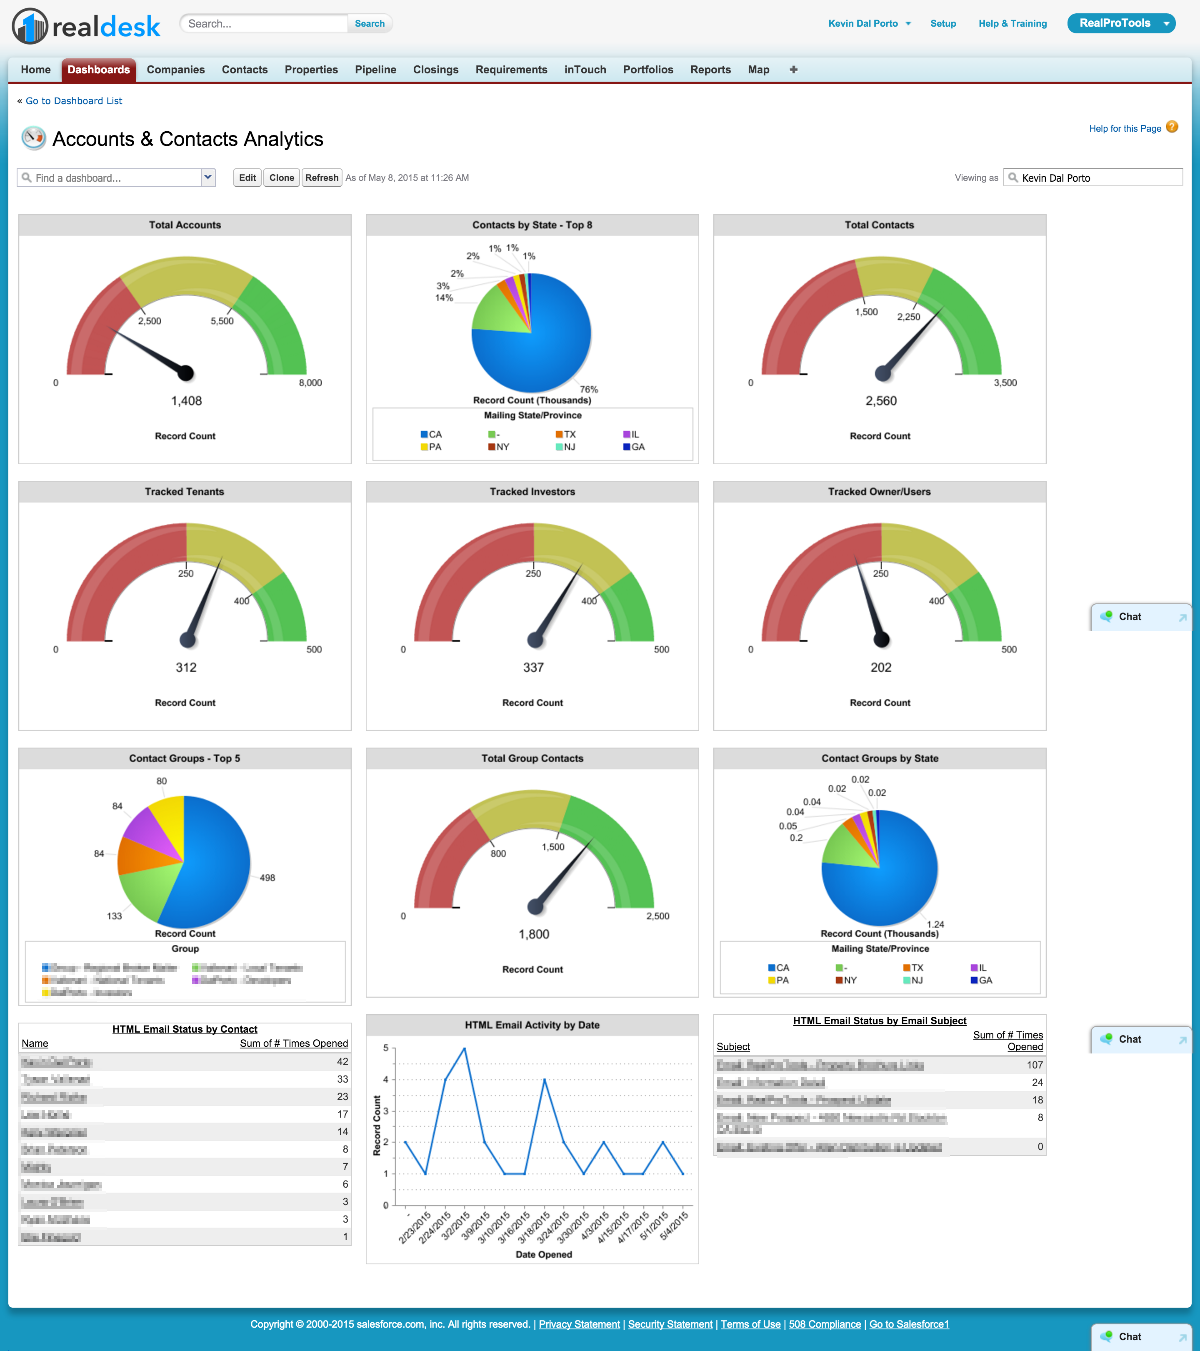 Dashboards Contacts